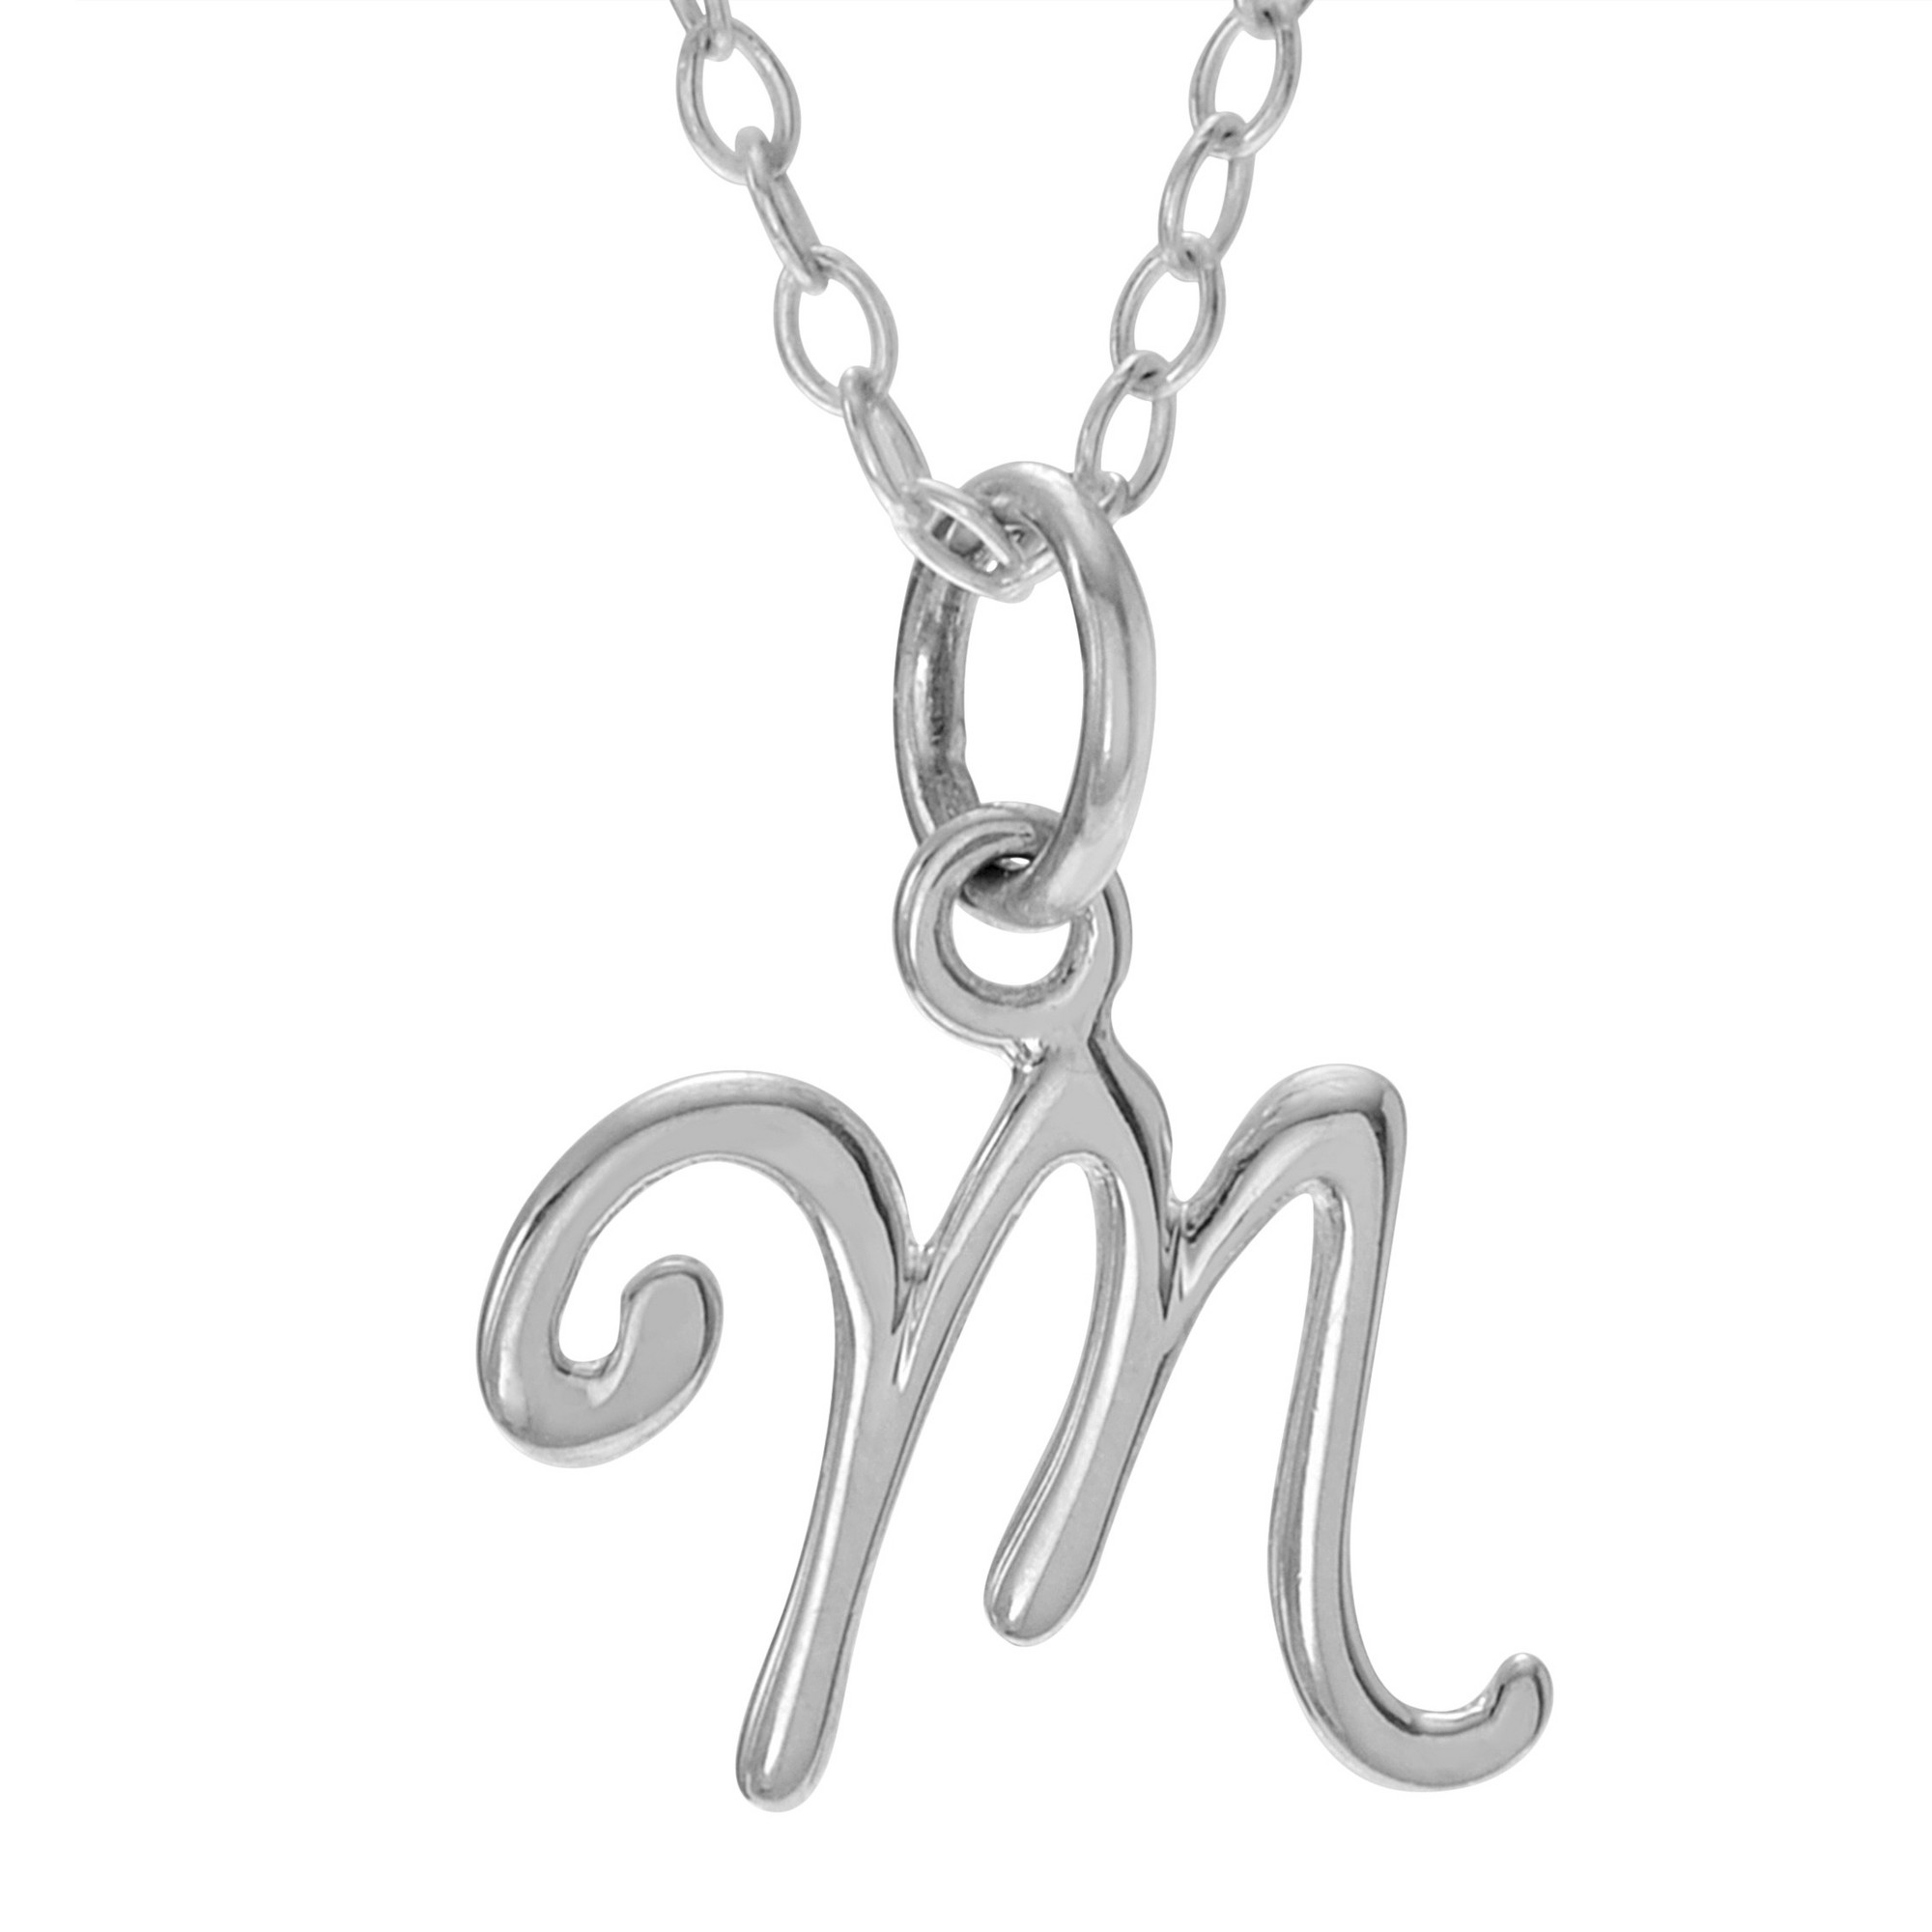 Womenus journee collection initial m charm pendant necklace in